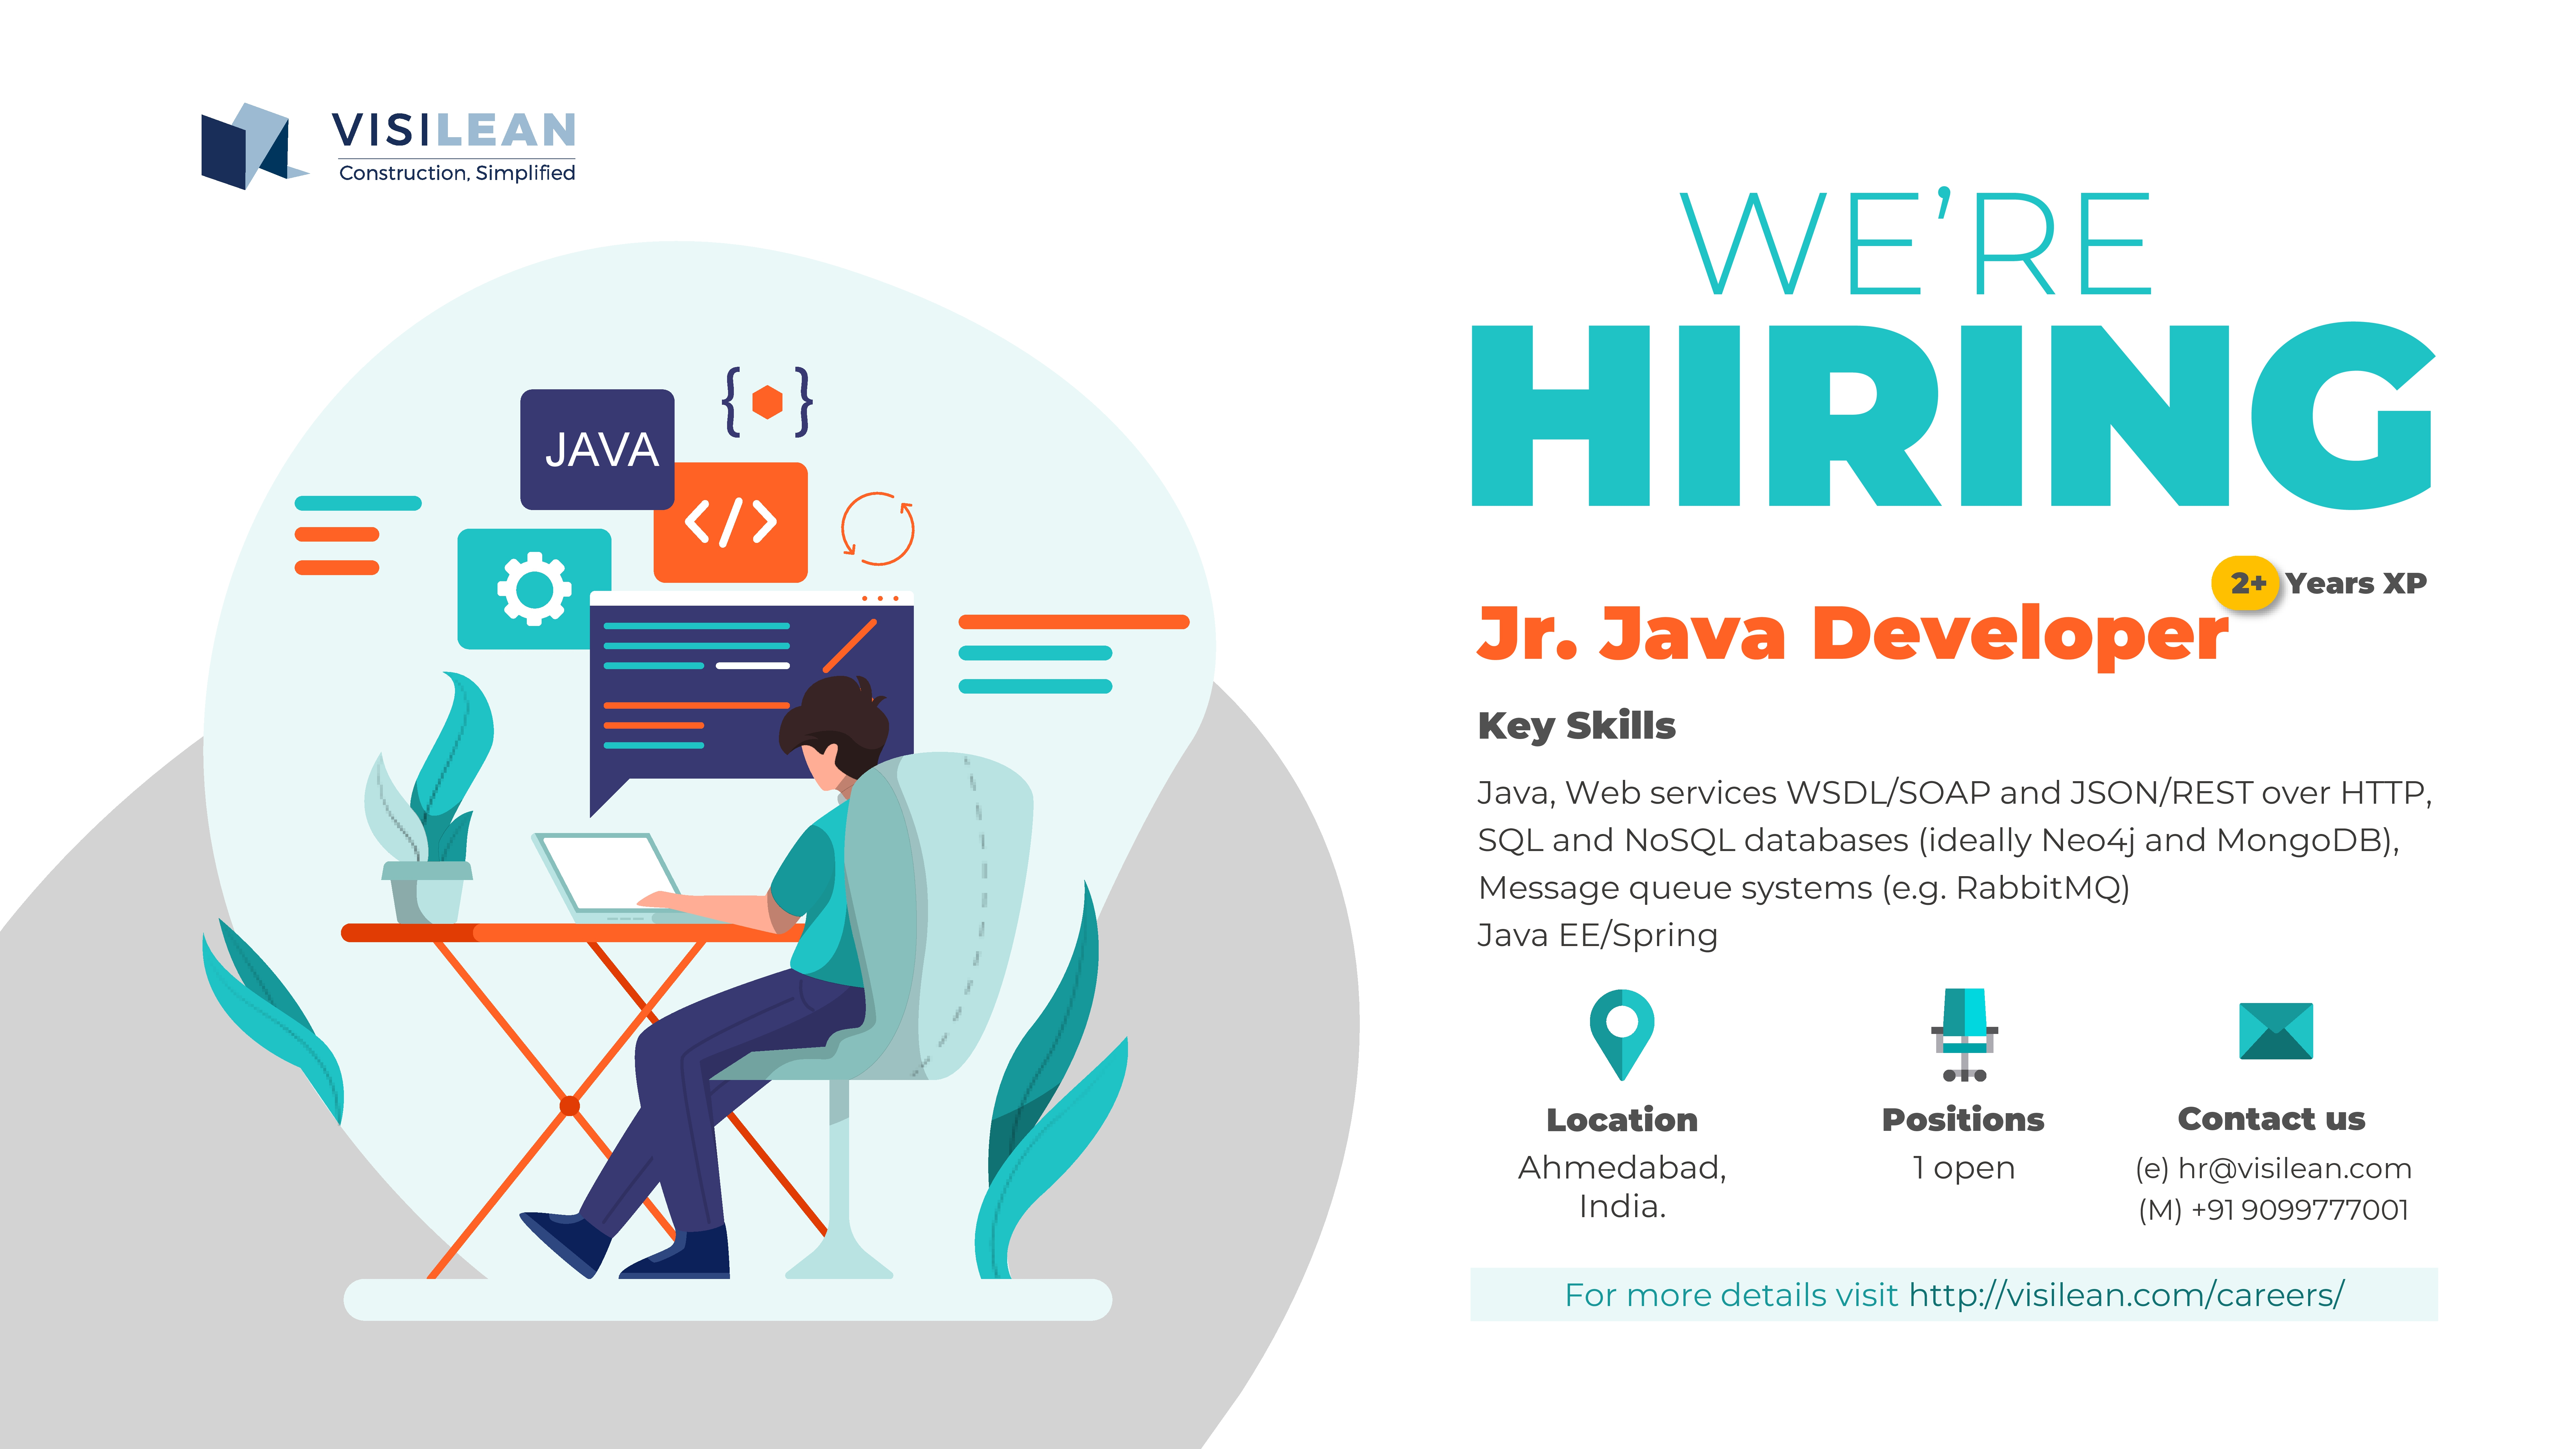 Jr. Java Developer